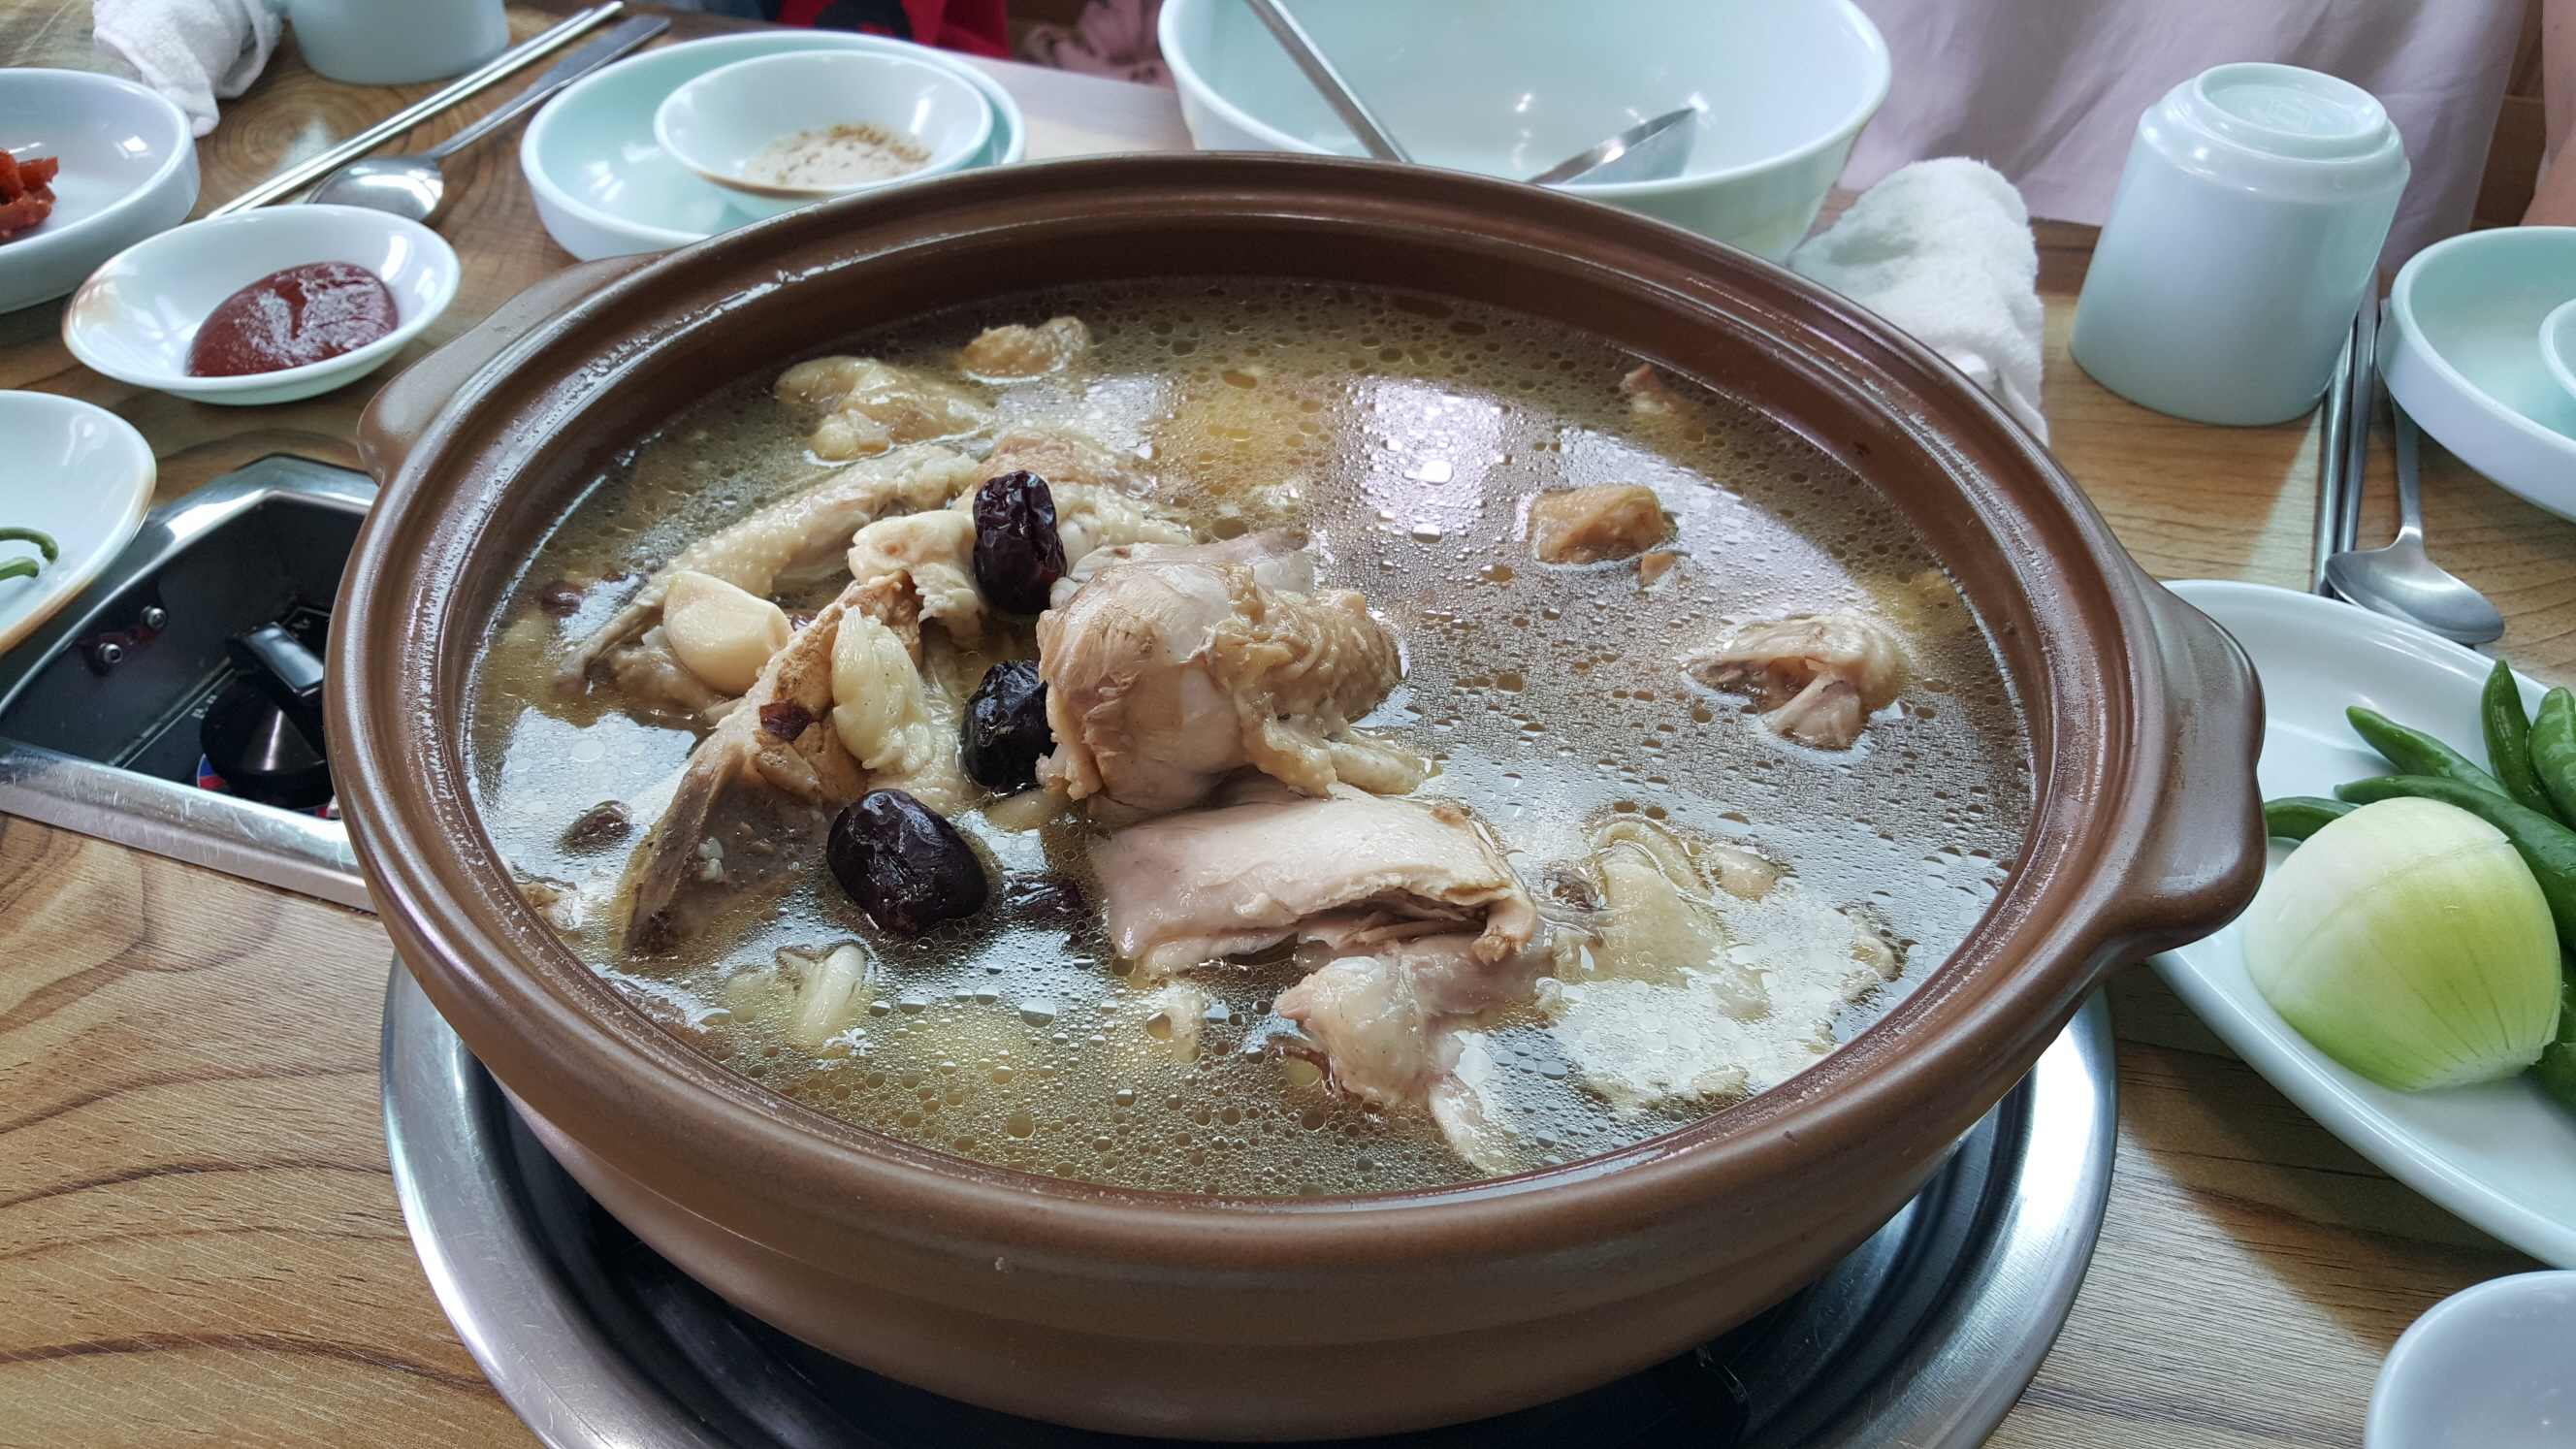 resized_singapore-2015-september-Anseong-samgyetang.jpg